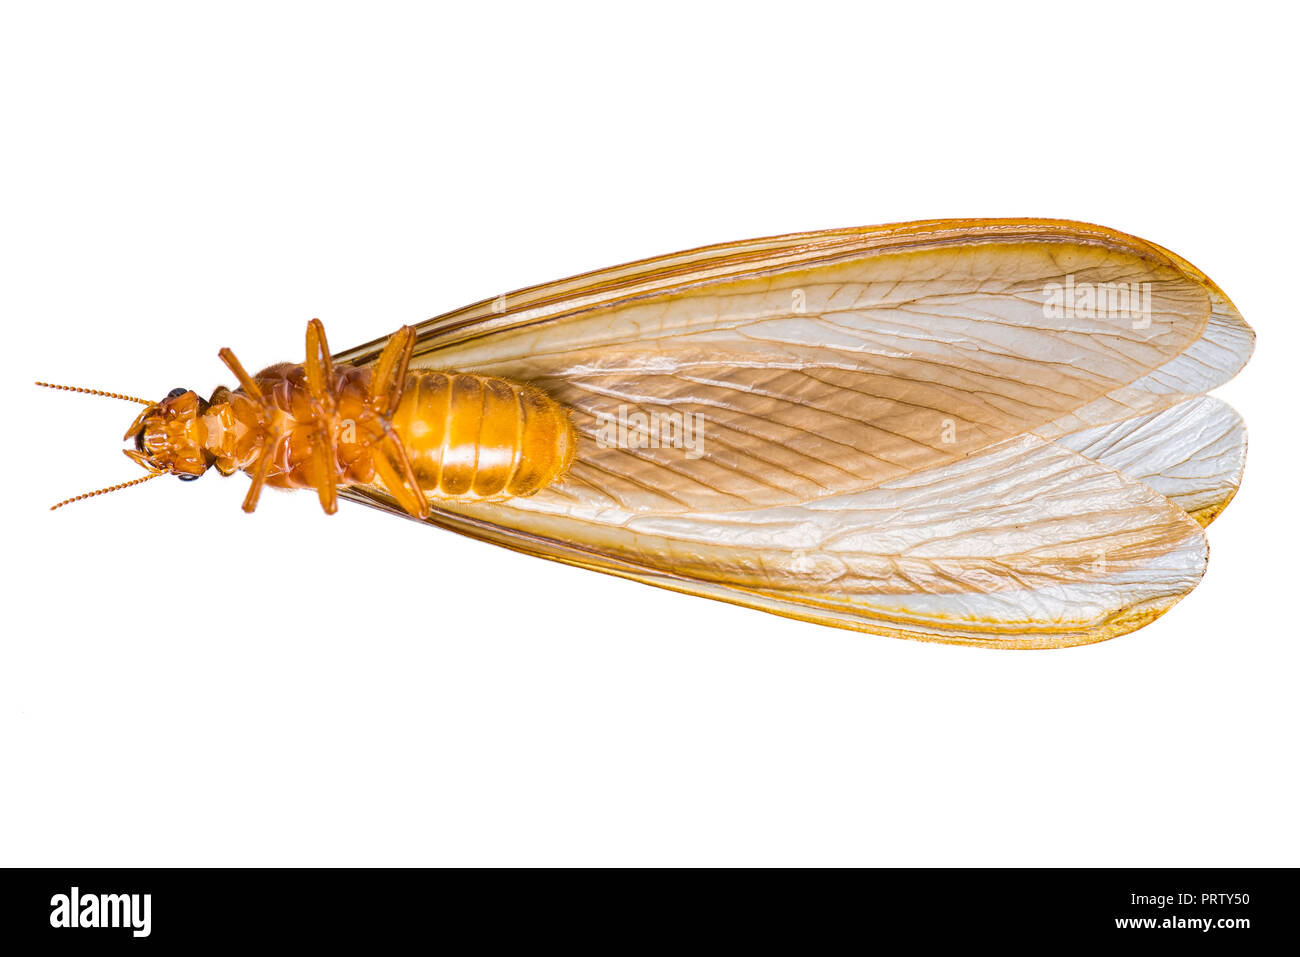 A flying termite or Alates isolated on white background. - Stock Image